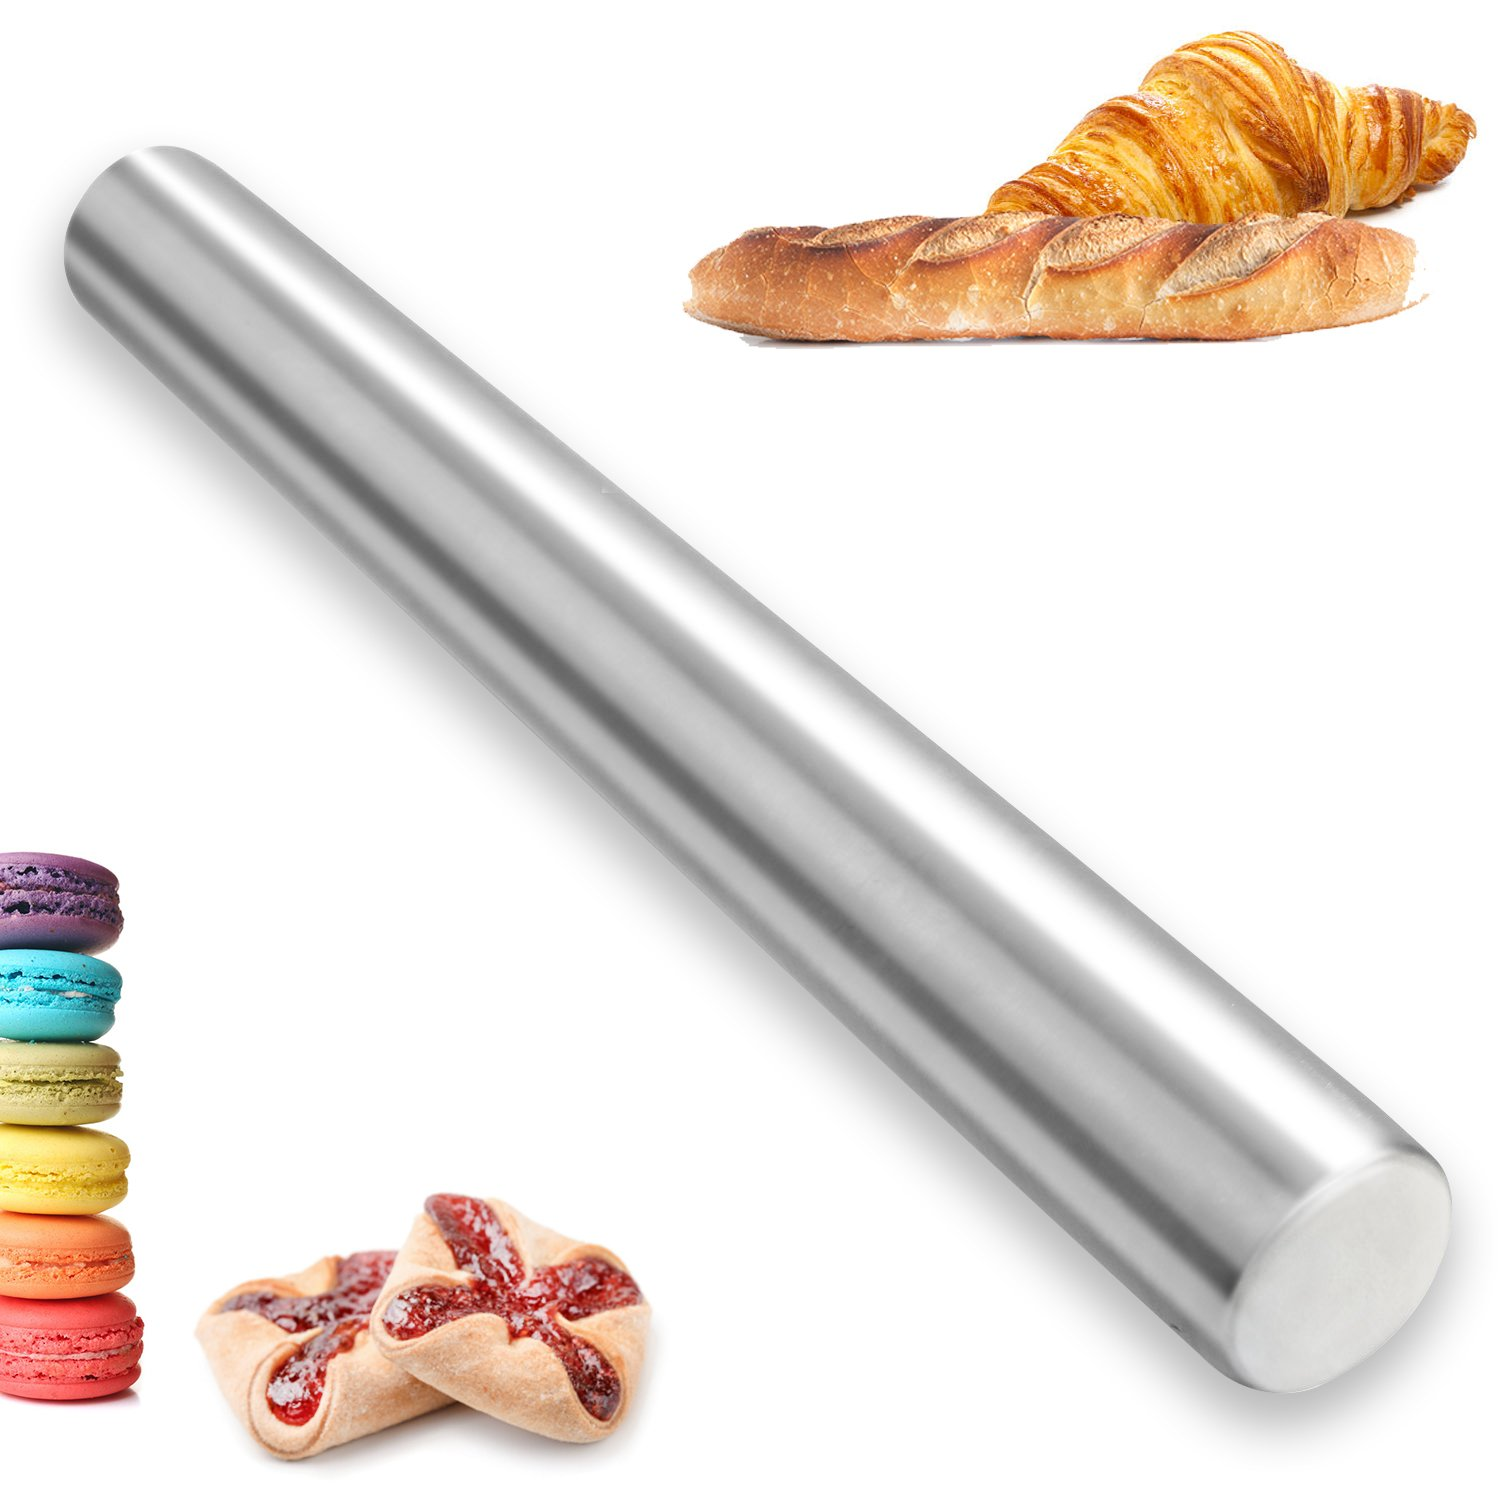 Stainless Steel Rolling Pin Kitchwise